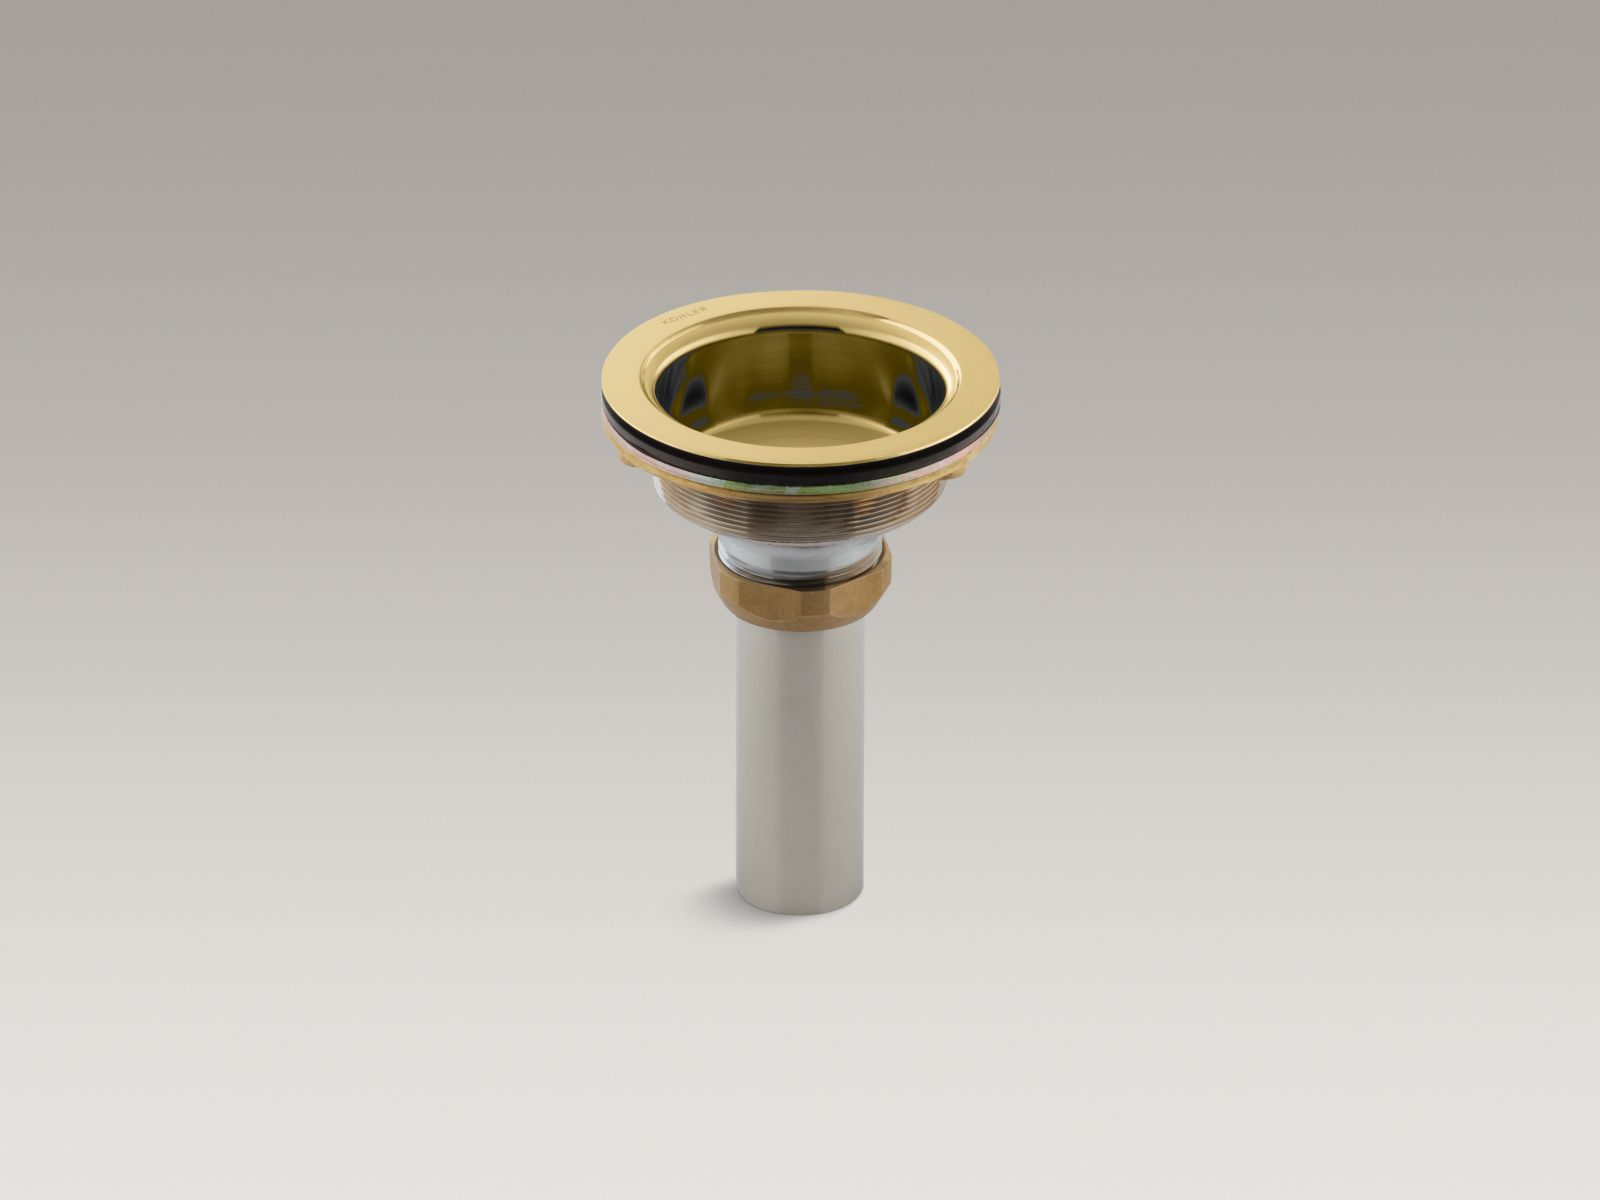 Kohler K-8804-PB Body with Tailpiece from Duostrainer Collection, Polished Brass